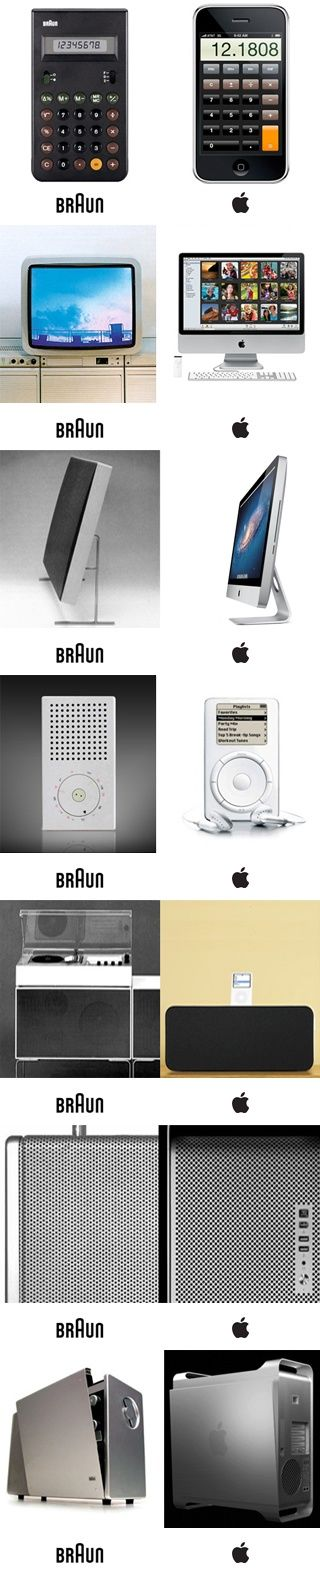 Braun vs. Apple / 1960s vs. 2010s / Nothing against Apple, beautiful technology, packed in some good old fashioned design!